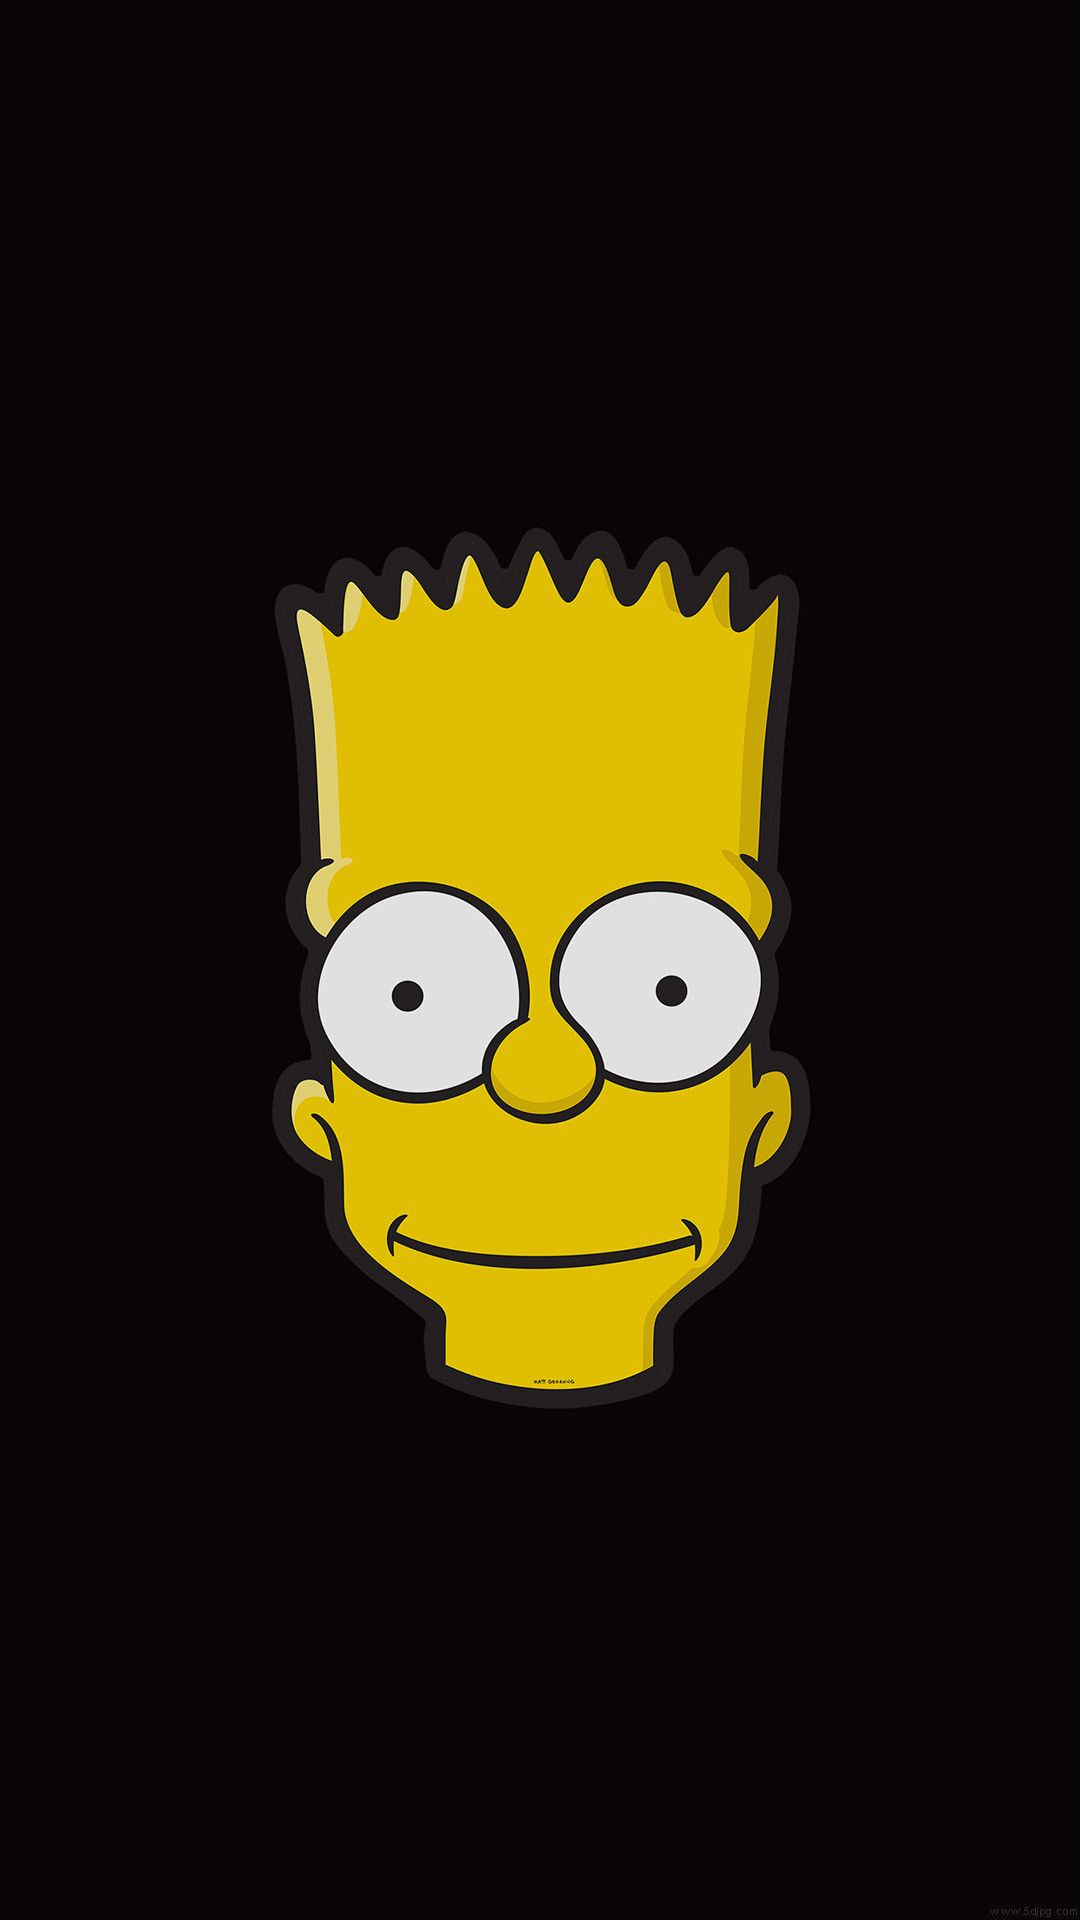 1080x1920 Simpsons 1080x1920 hd wallpapers Bart simpson